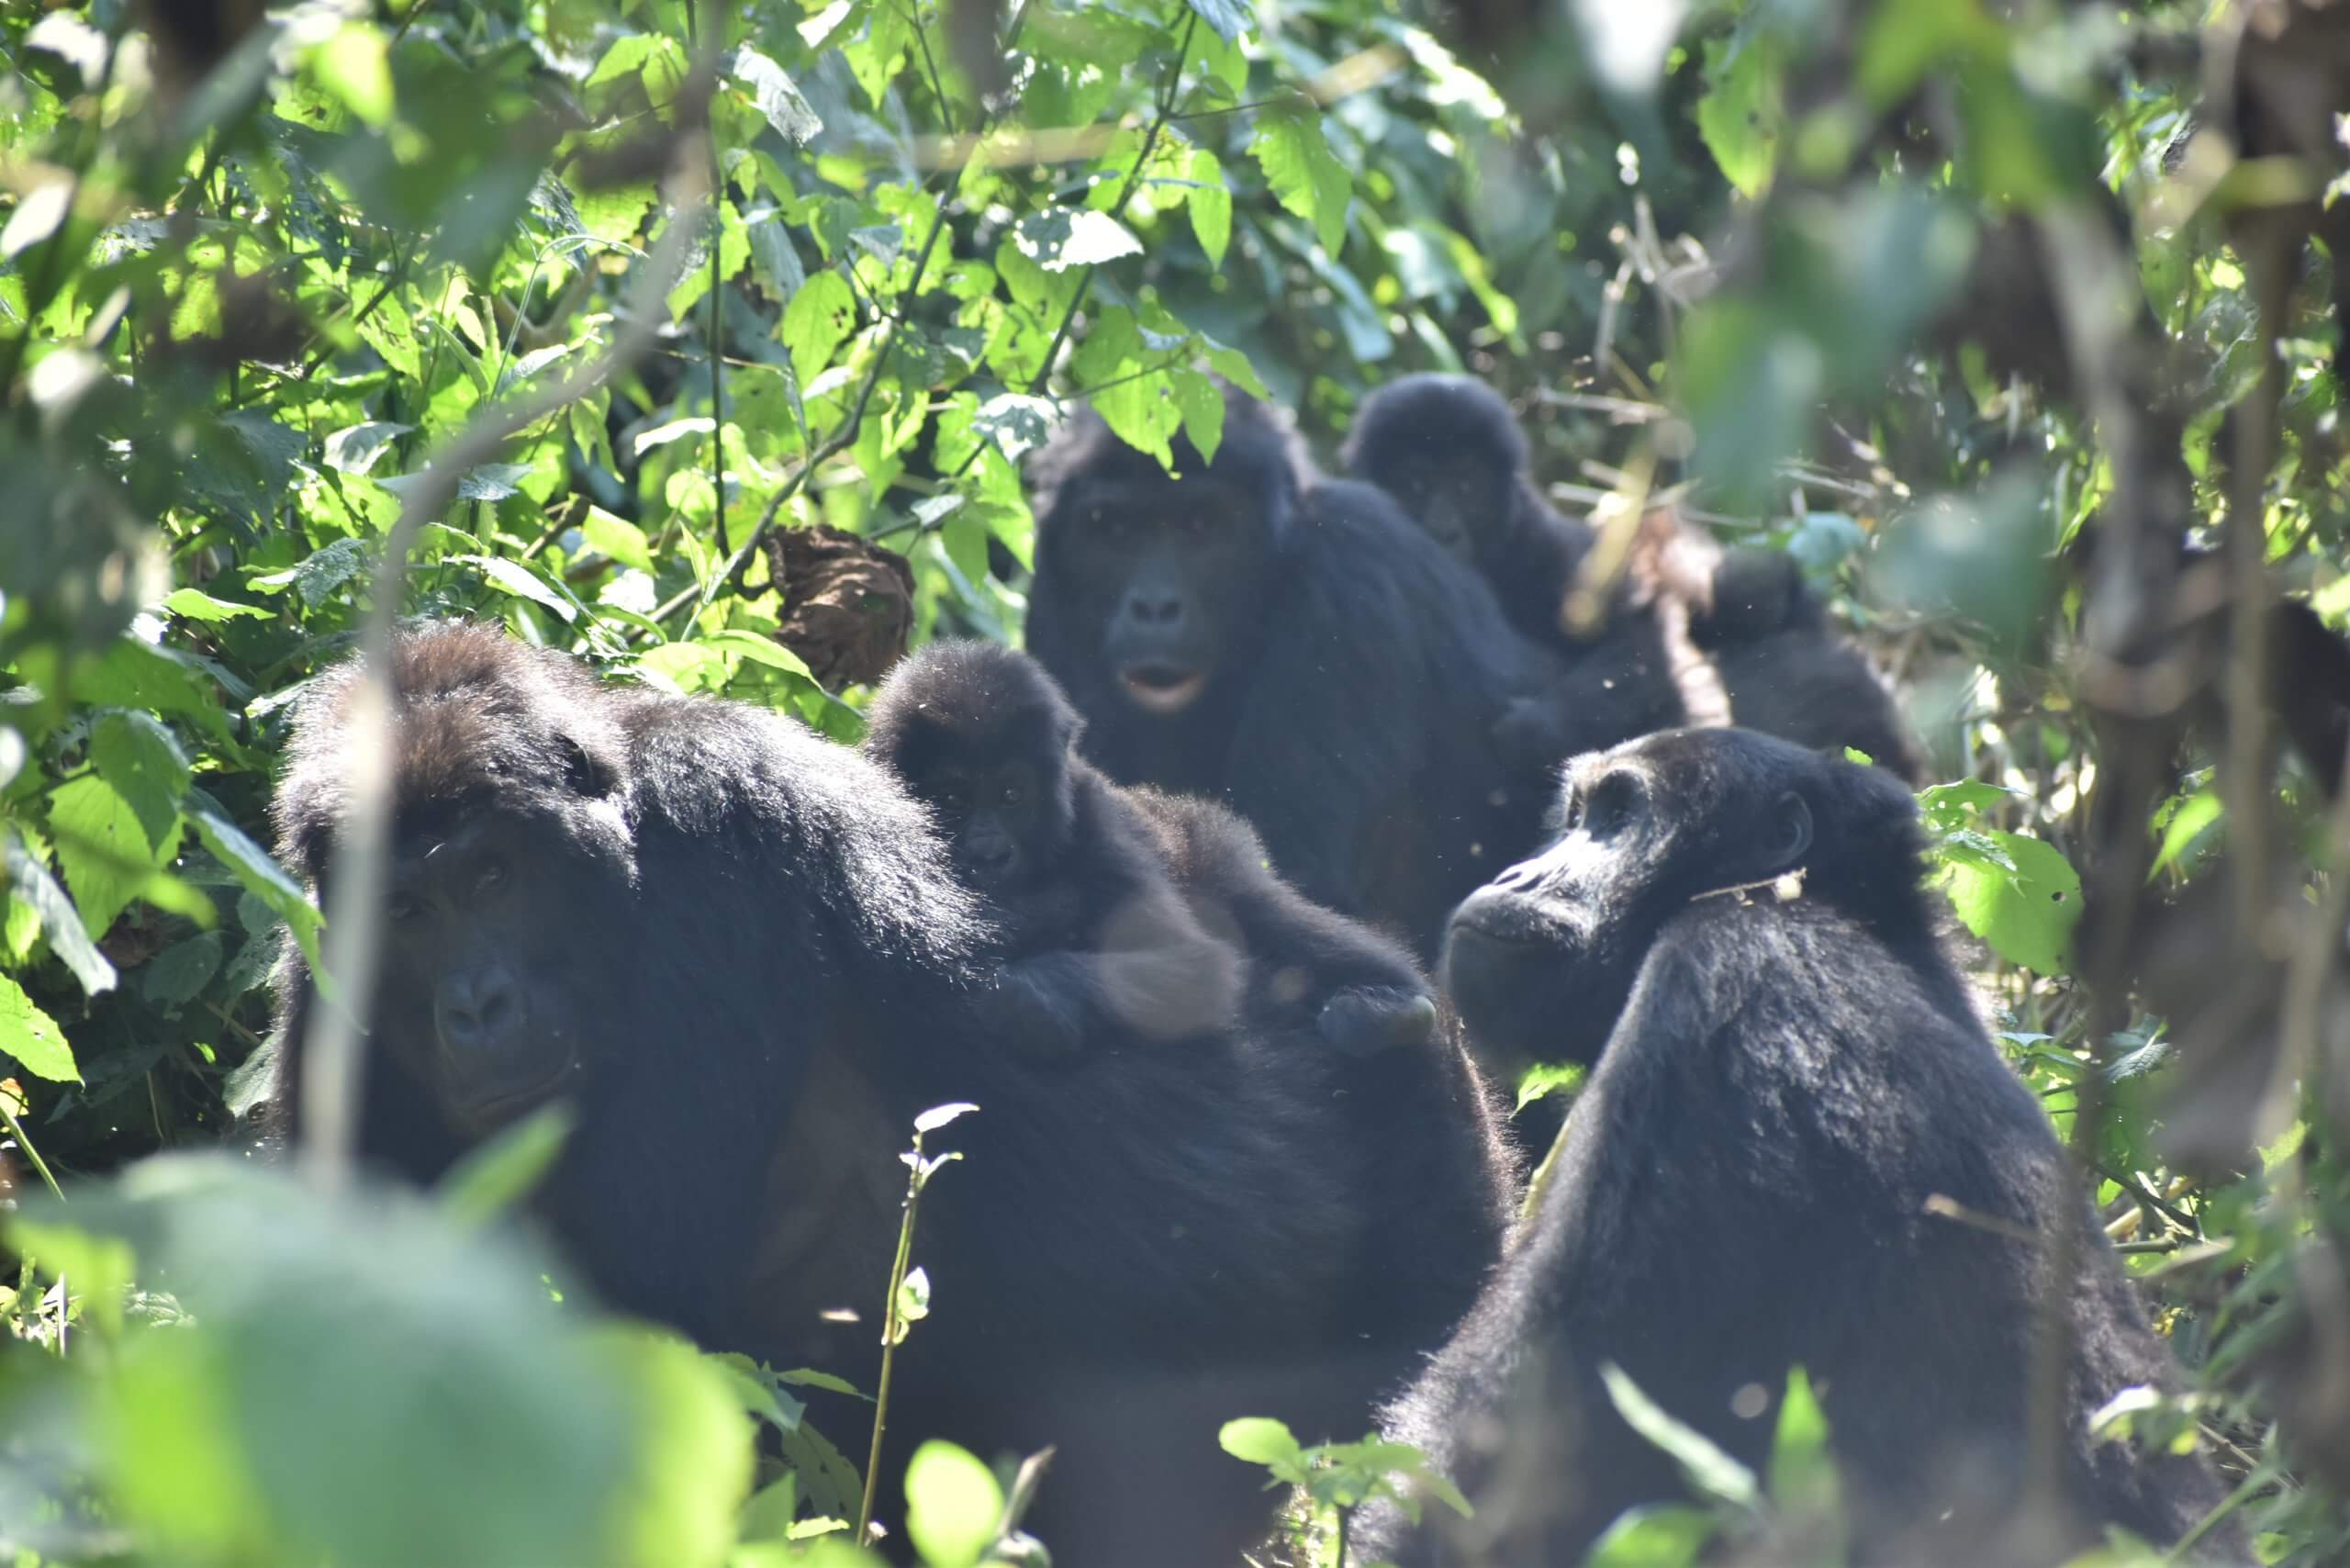 Adult females of Mpungwe familly with their offsprings, Primate Expertise@2021